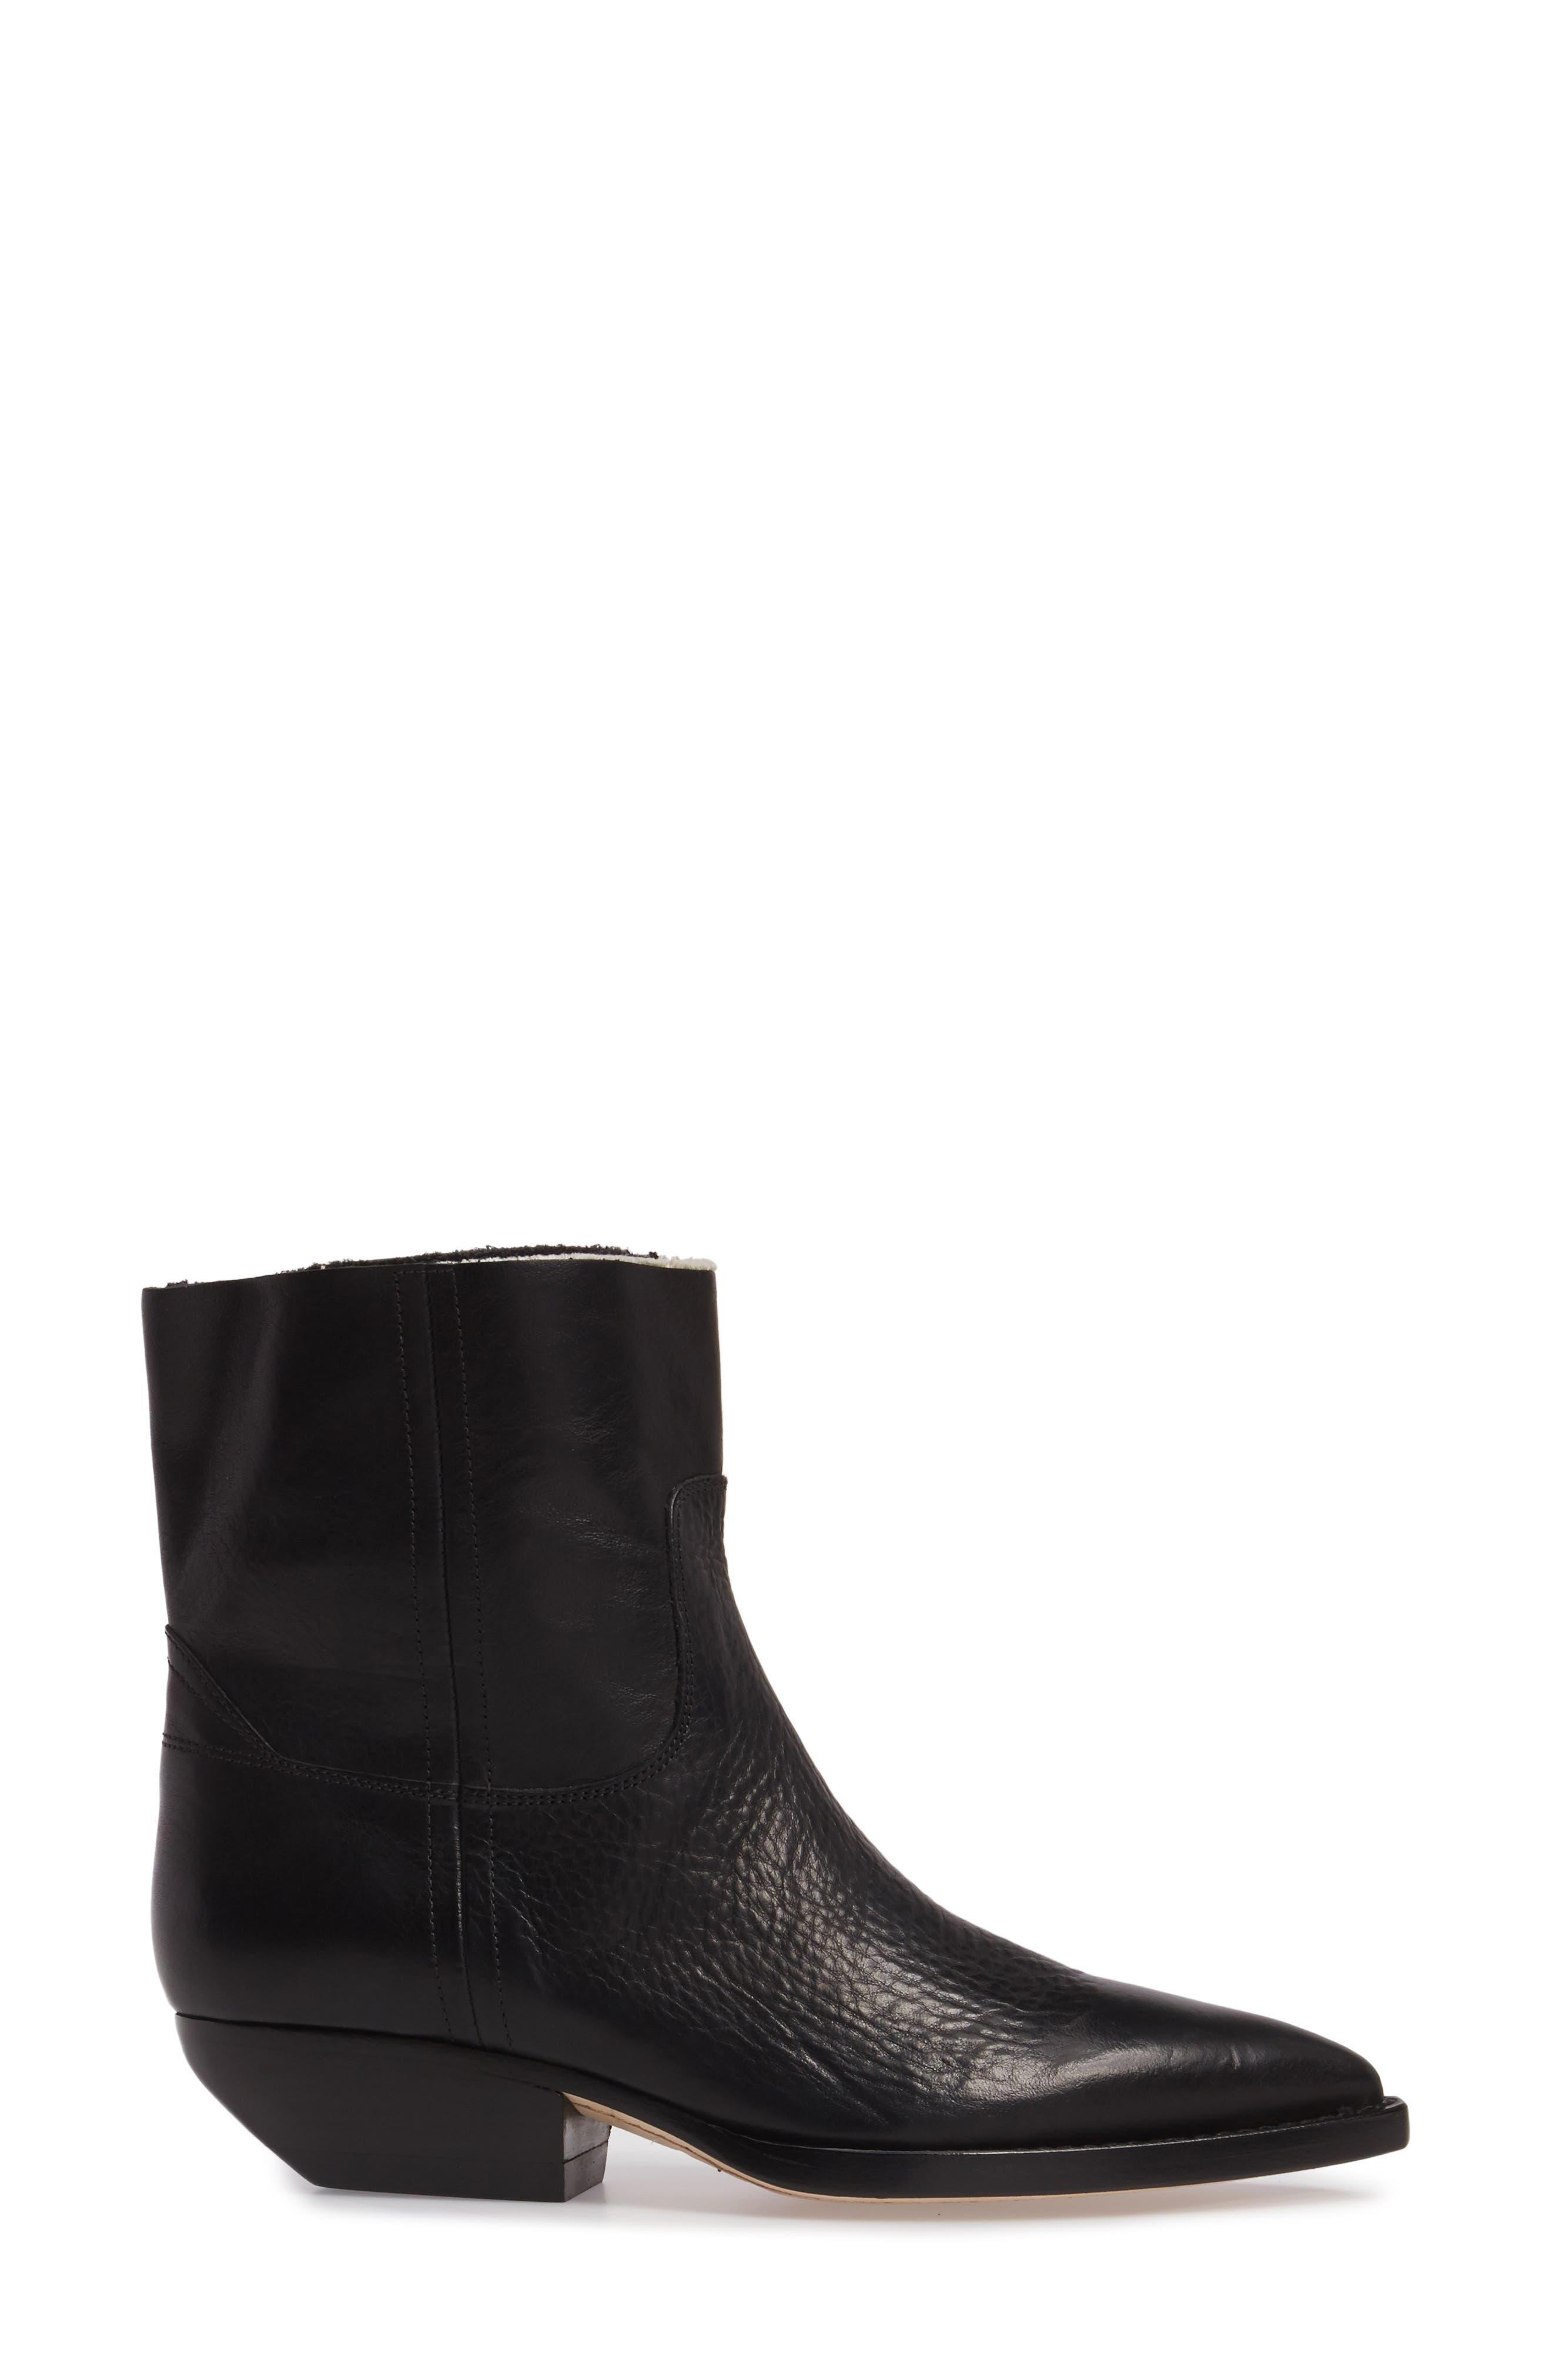 Theo Eli Western Bootie,                             Alternate thumbnail 3, color,                             001